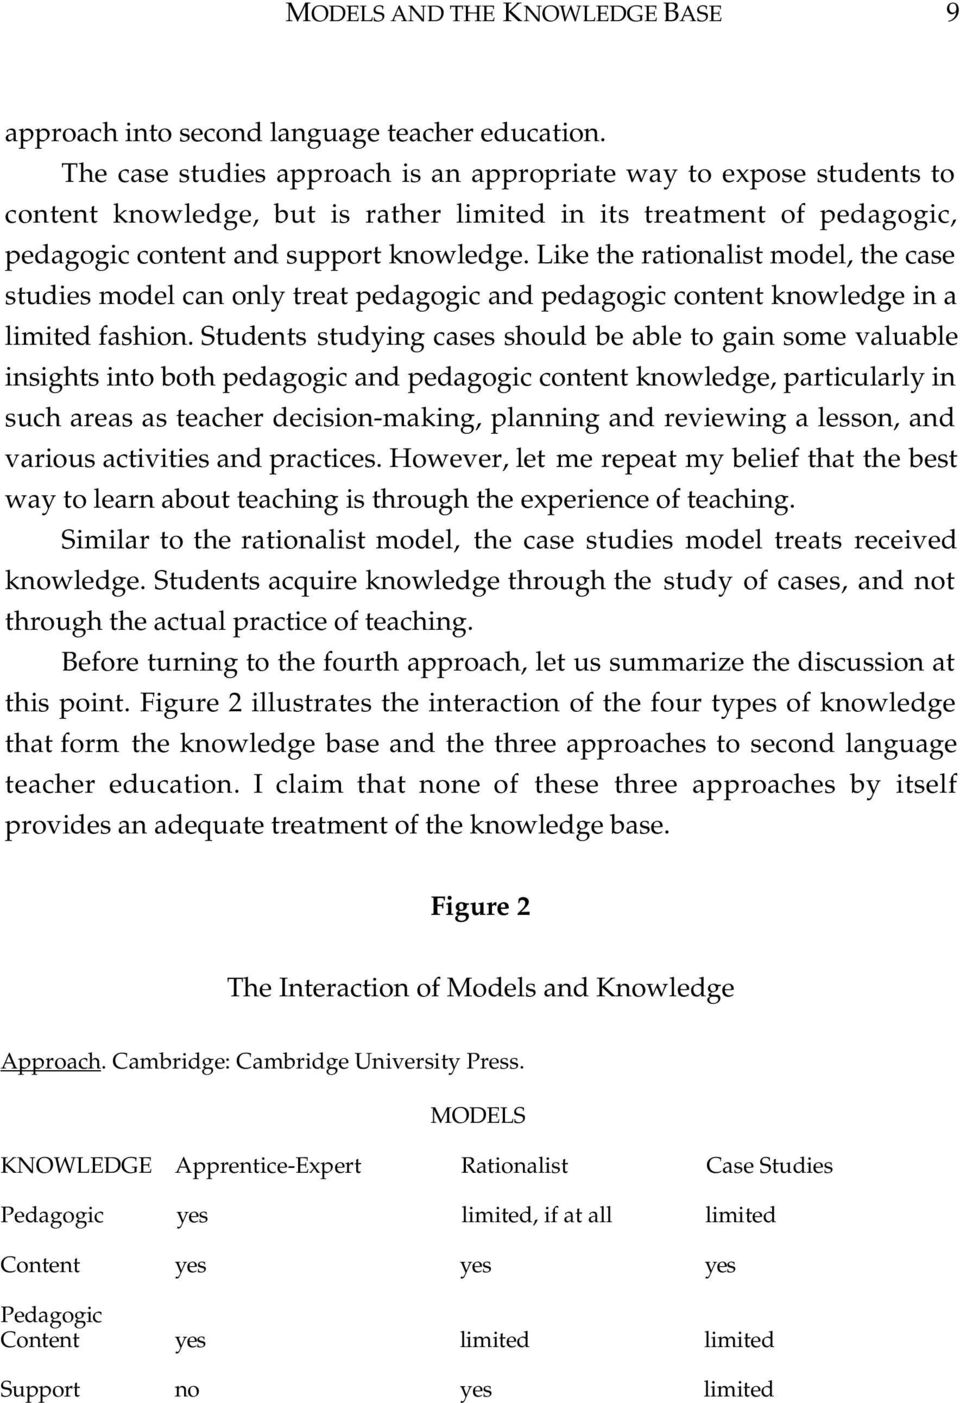 Like the rationalist model, the case studies model can only treat pedagogic and pedagogic content knowledge in a limited fashion.